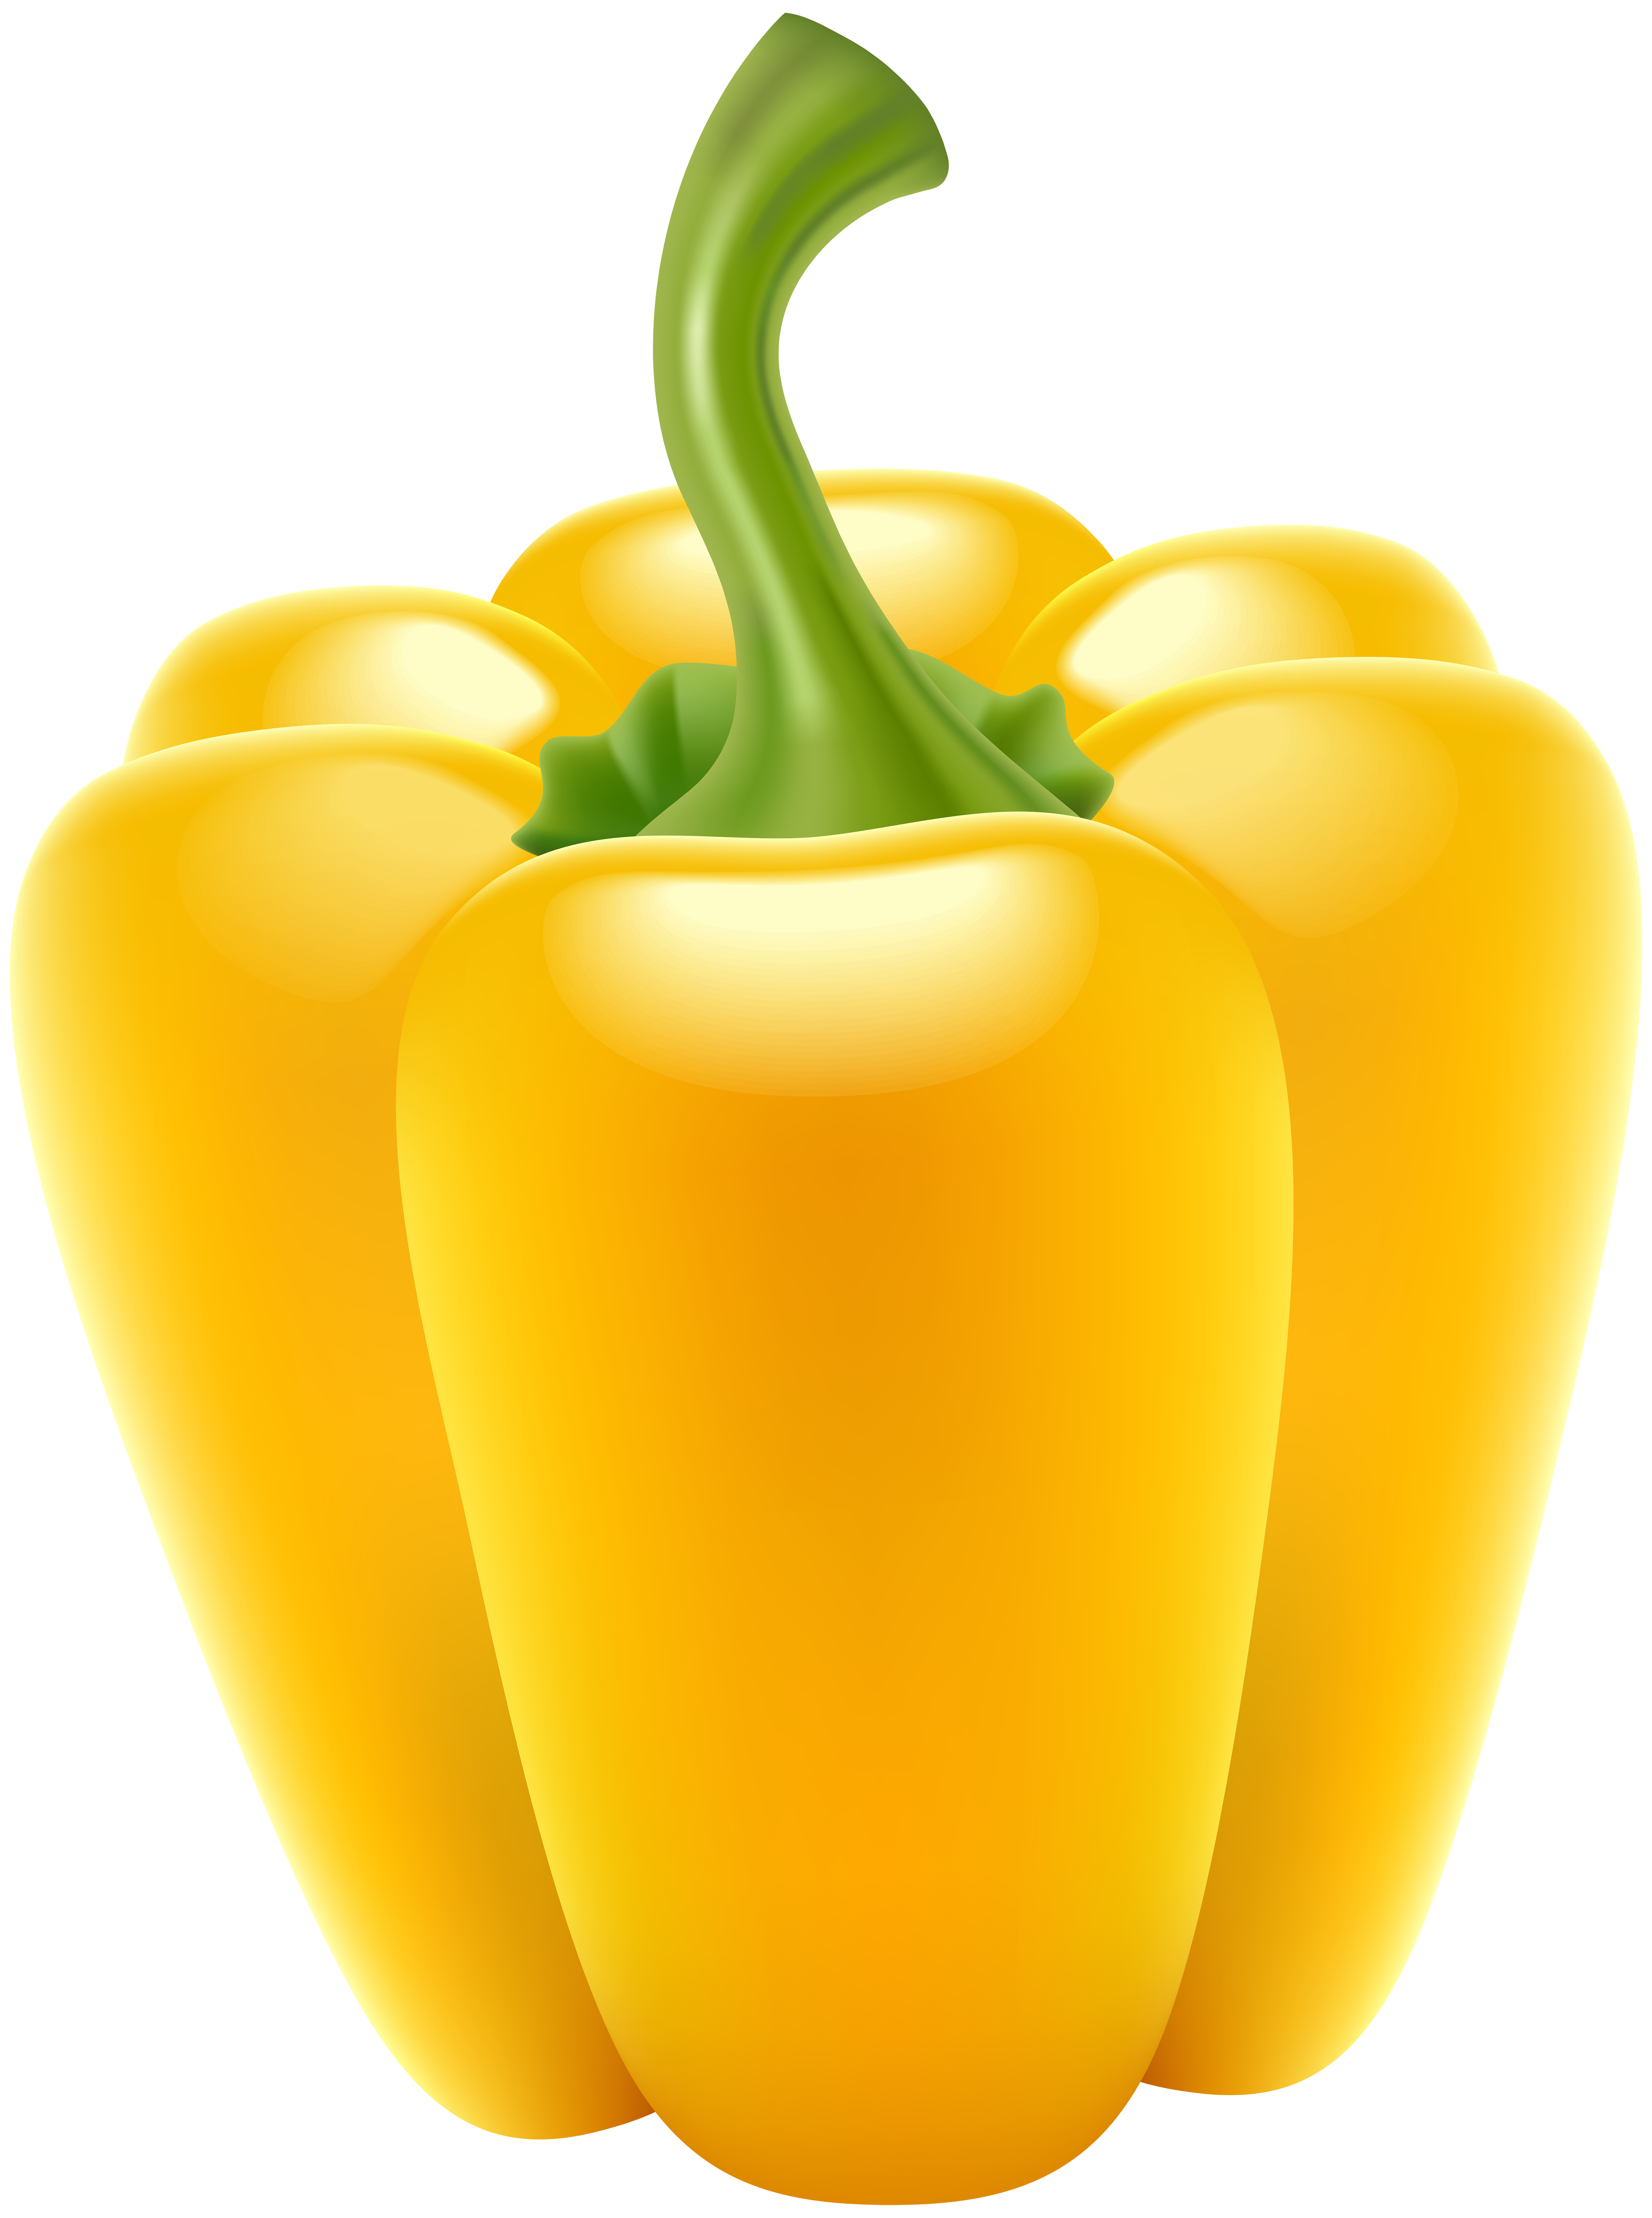 Bell transparent png clip. Peppers clipart yellow pepper